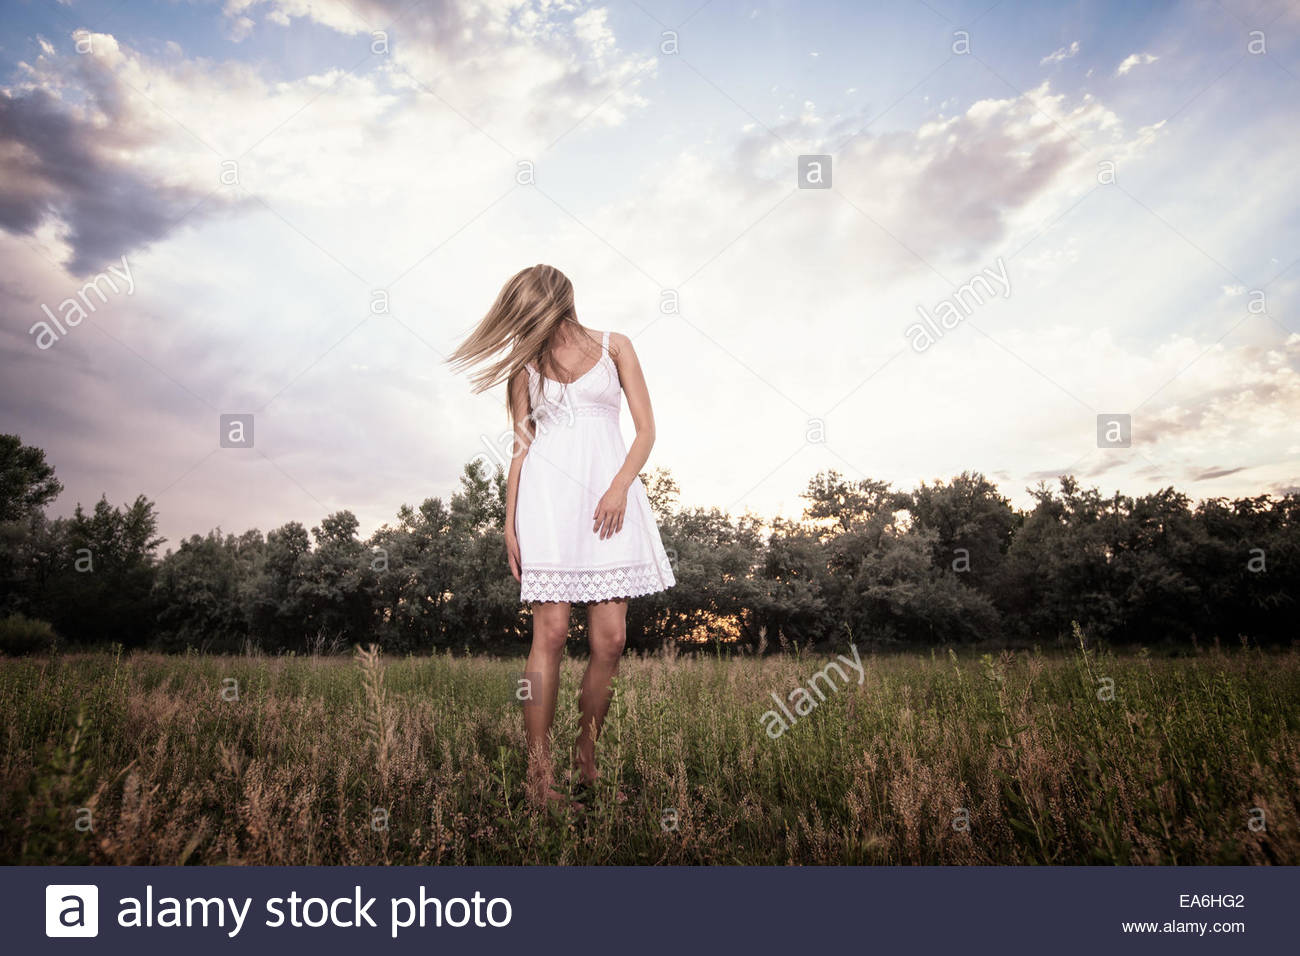 Woman standing in a meadow - Stock Image